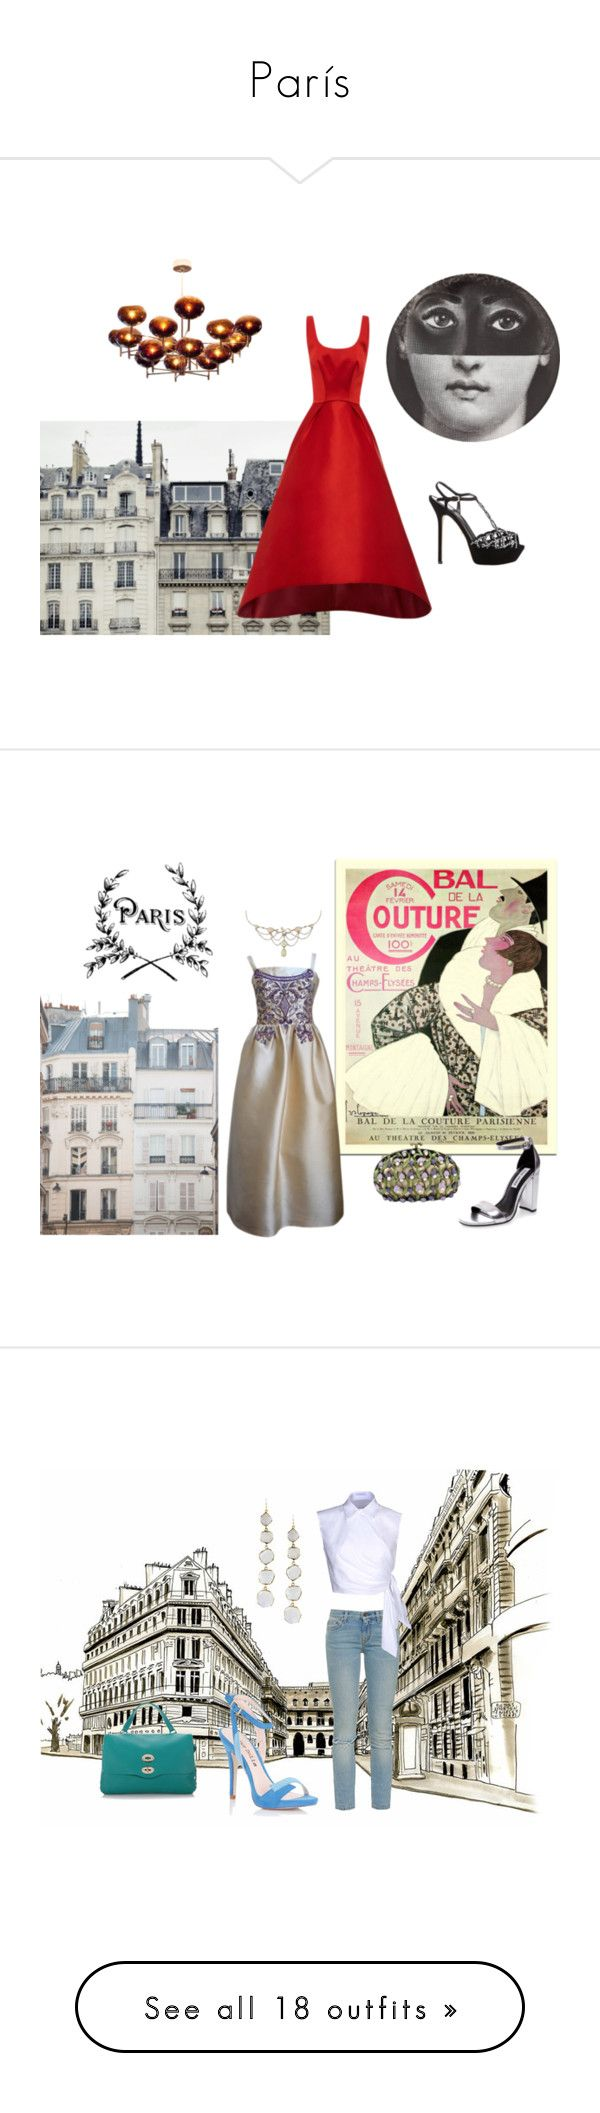 """""""París"""" by clararucula ❤ liked on Polyvore featuring Sergio Rossi, Zara, Fornasetti, Zac Posen, Haussmann, Yves Saint Laurent, J.W. Anderson, Lipsy, Zanellato and Feather & Stone"""